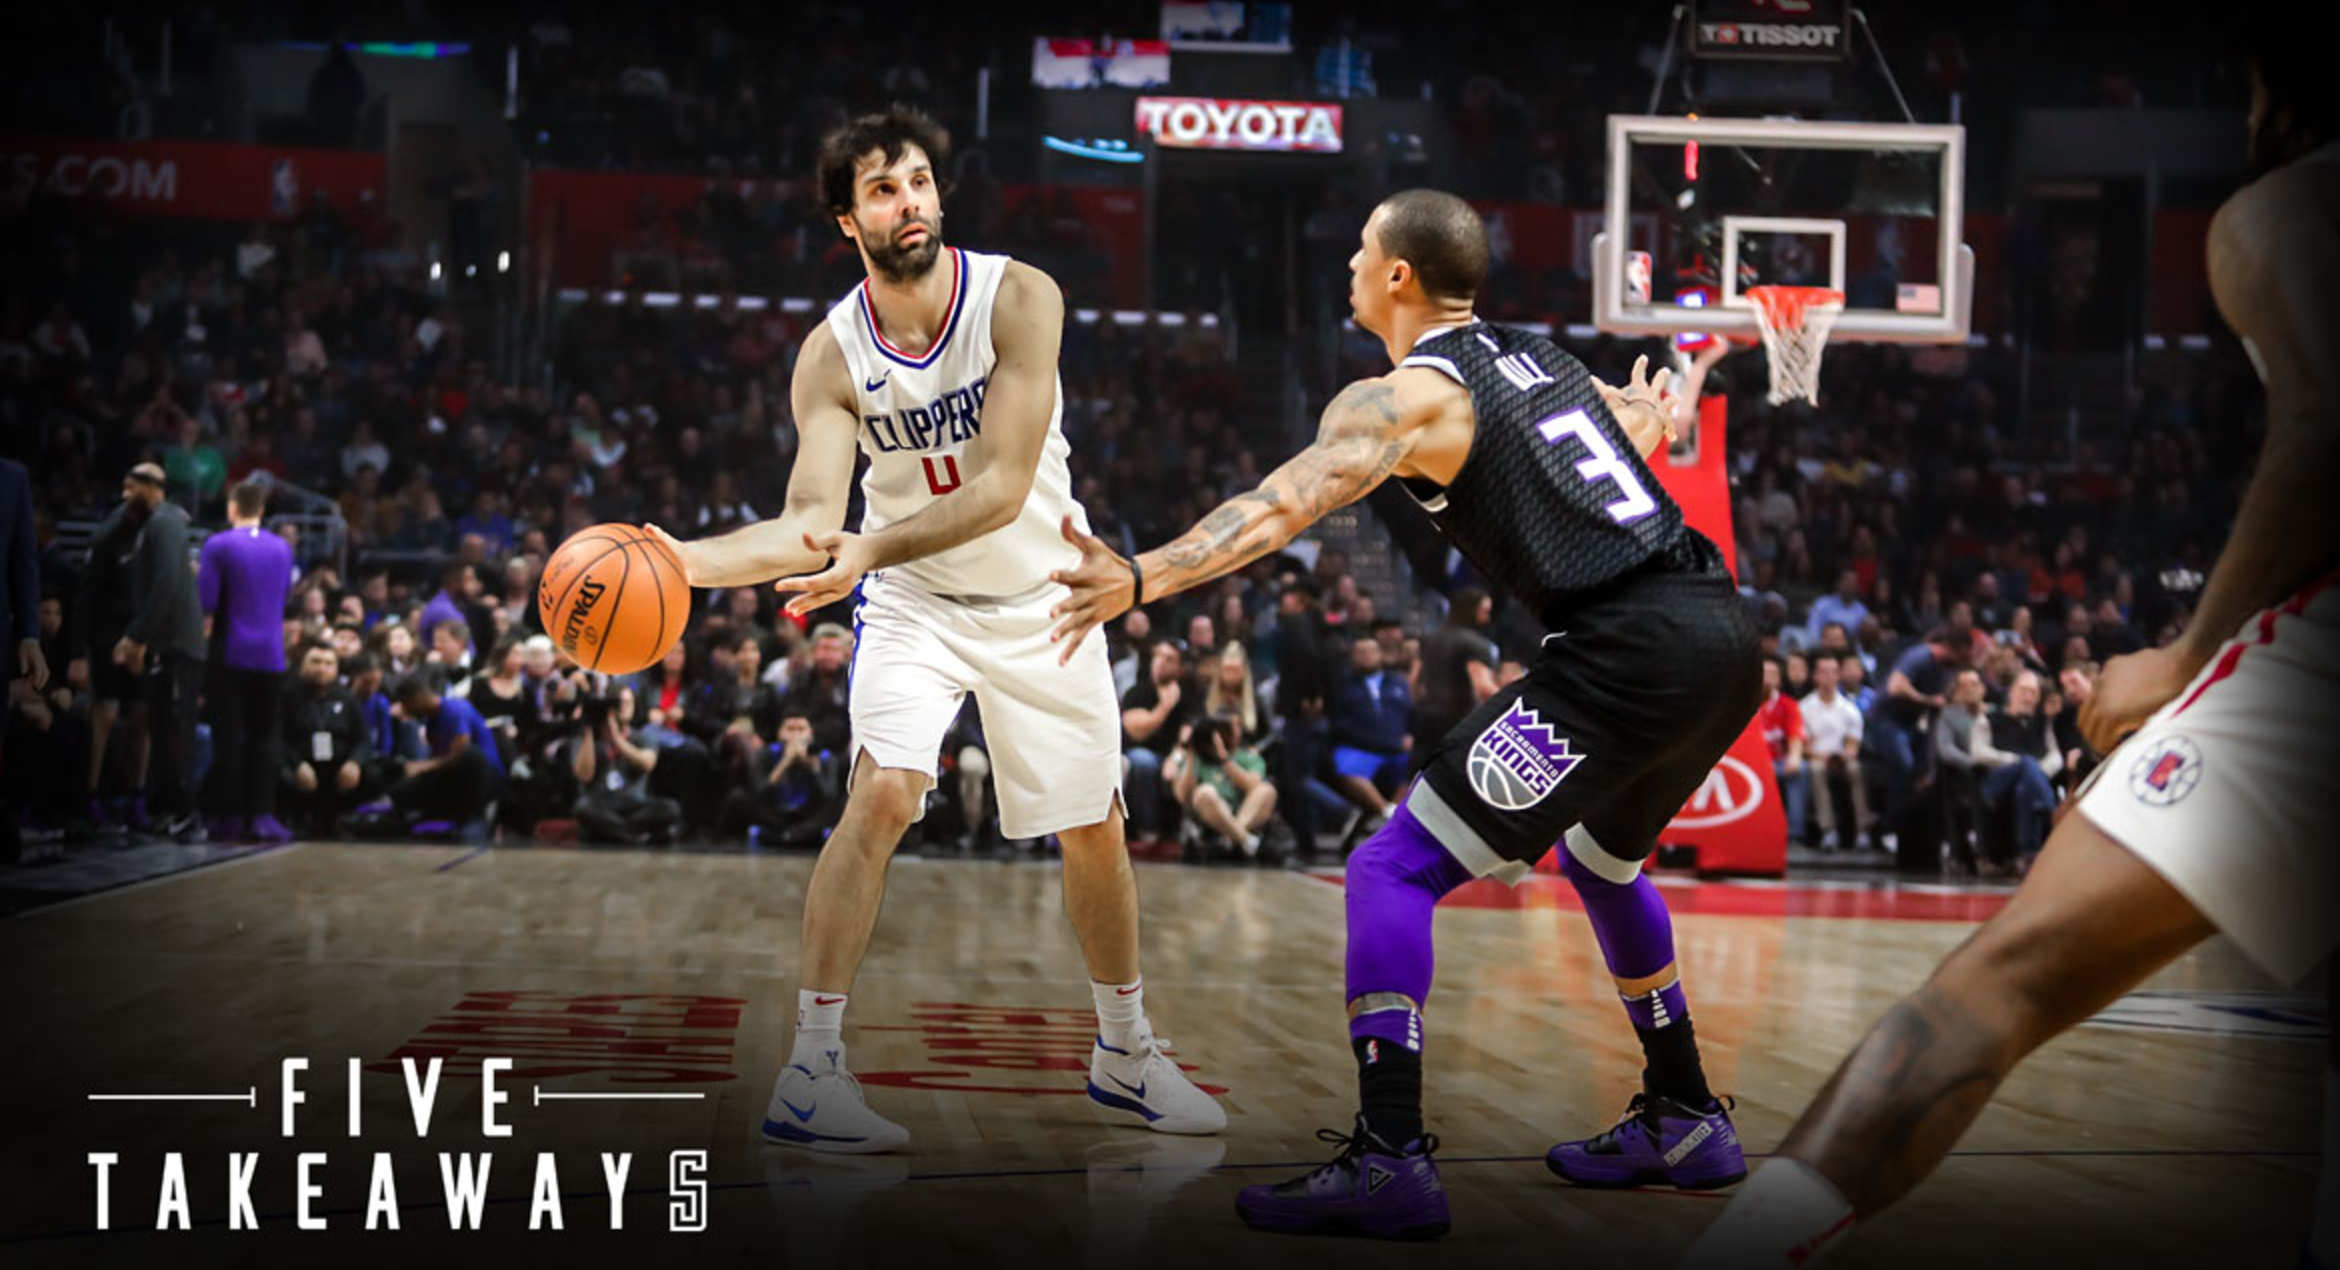 Five Takeaways: Clippers Post Season-High 31 Assists in win over Kings